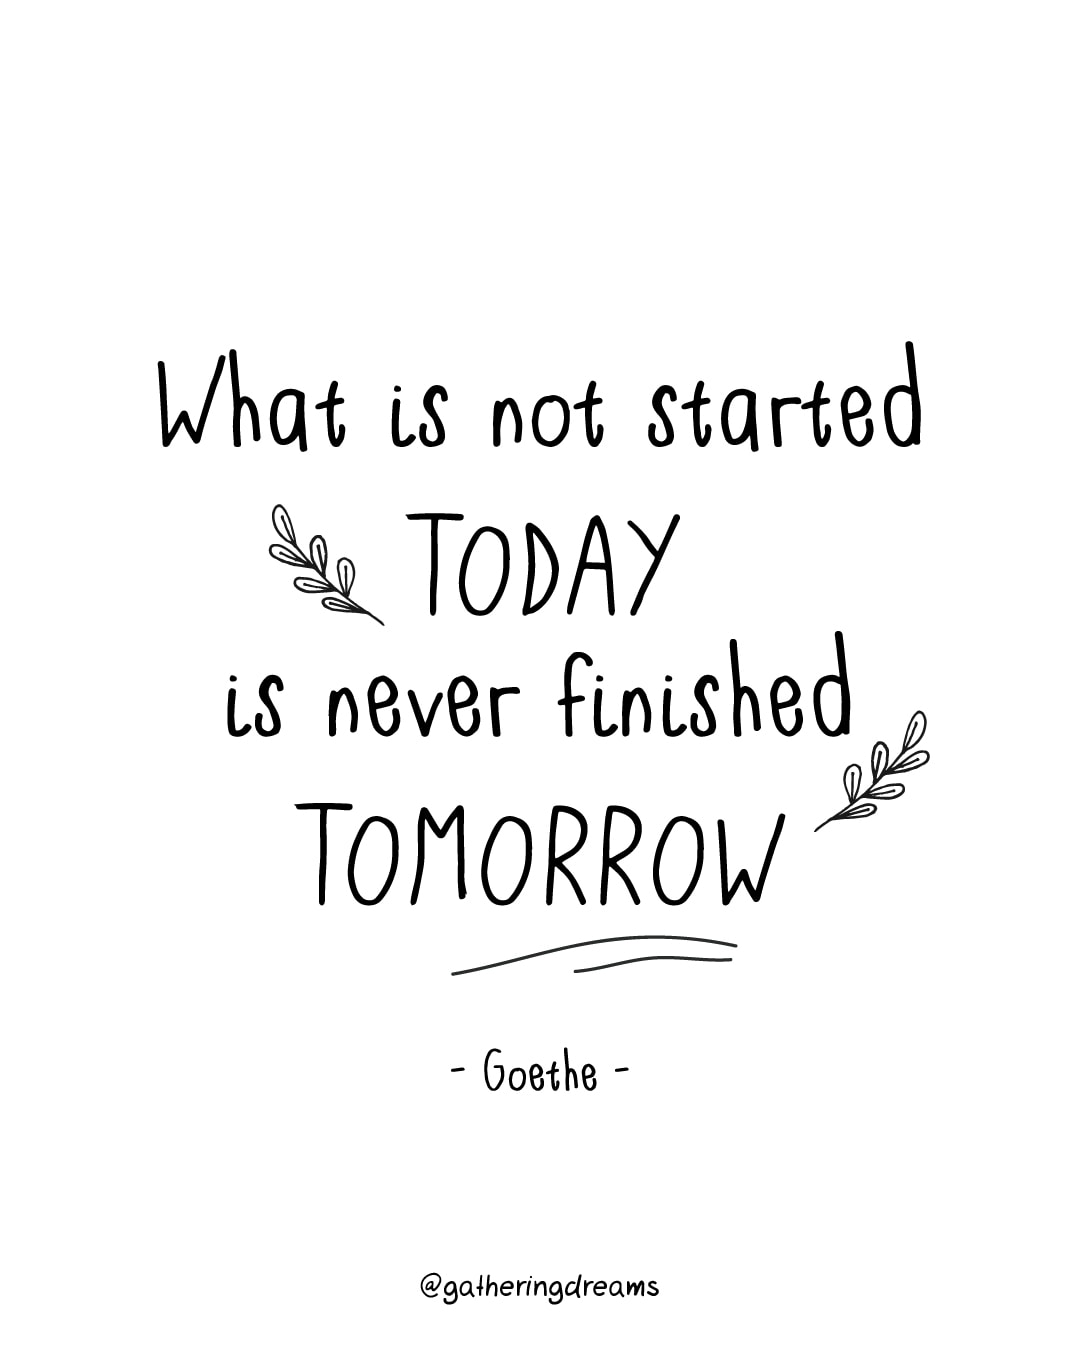 """What is not started today is never finished tomorrow."" Johann Wolfgang von Goethe"